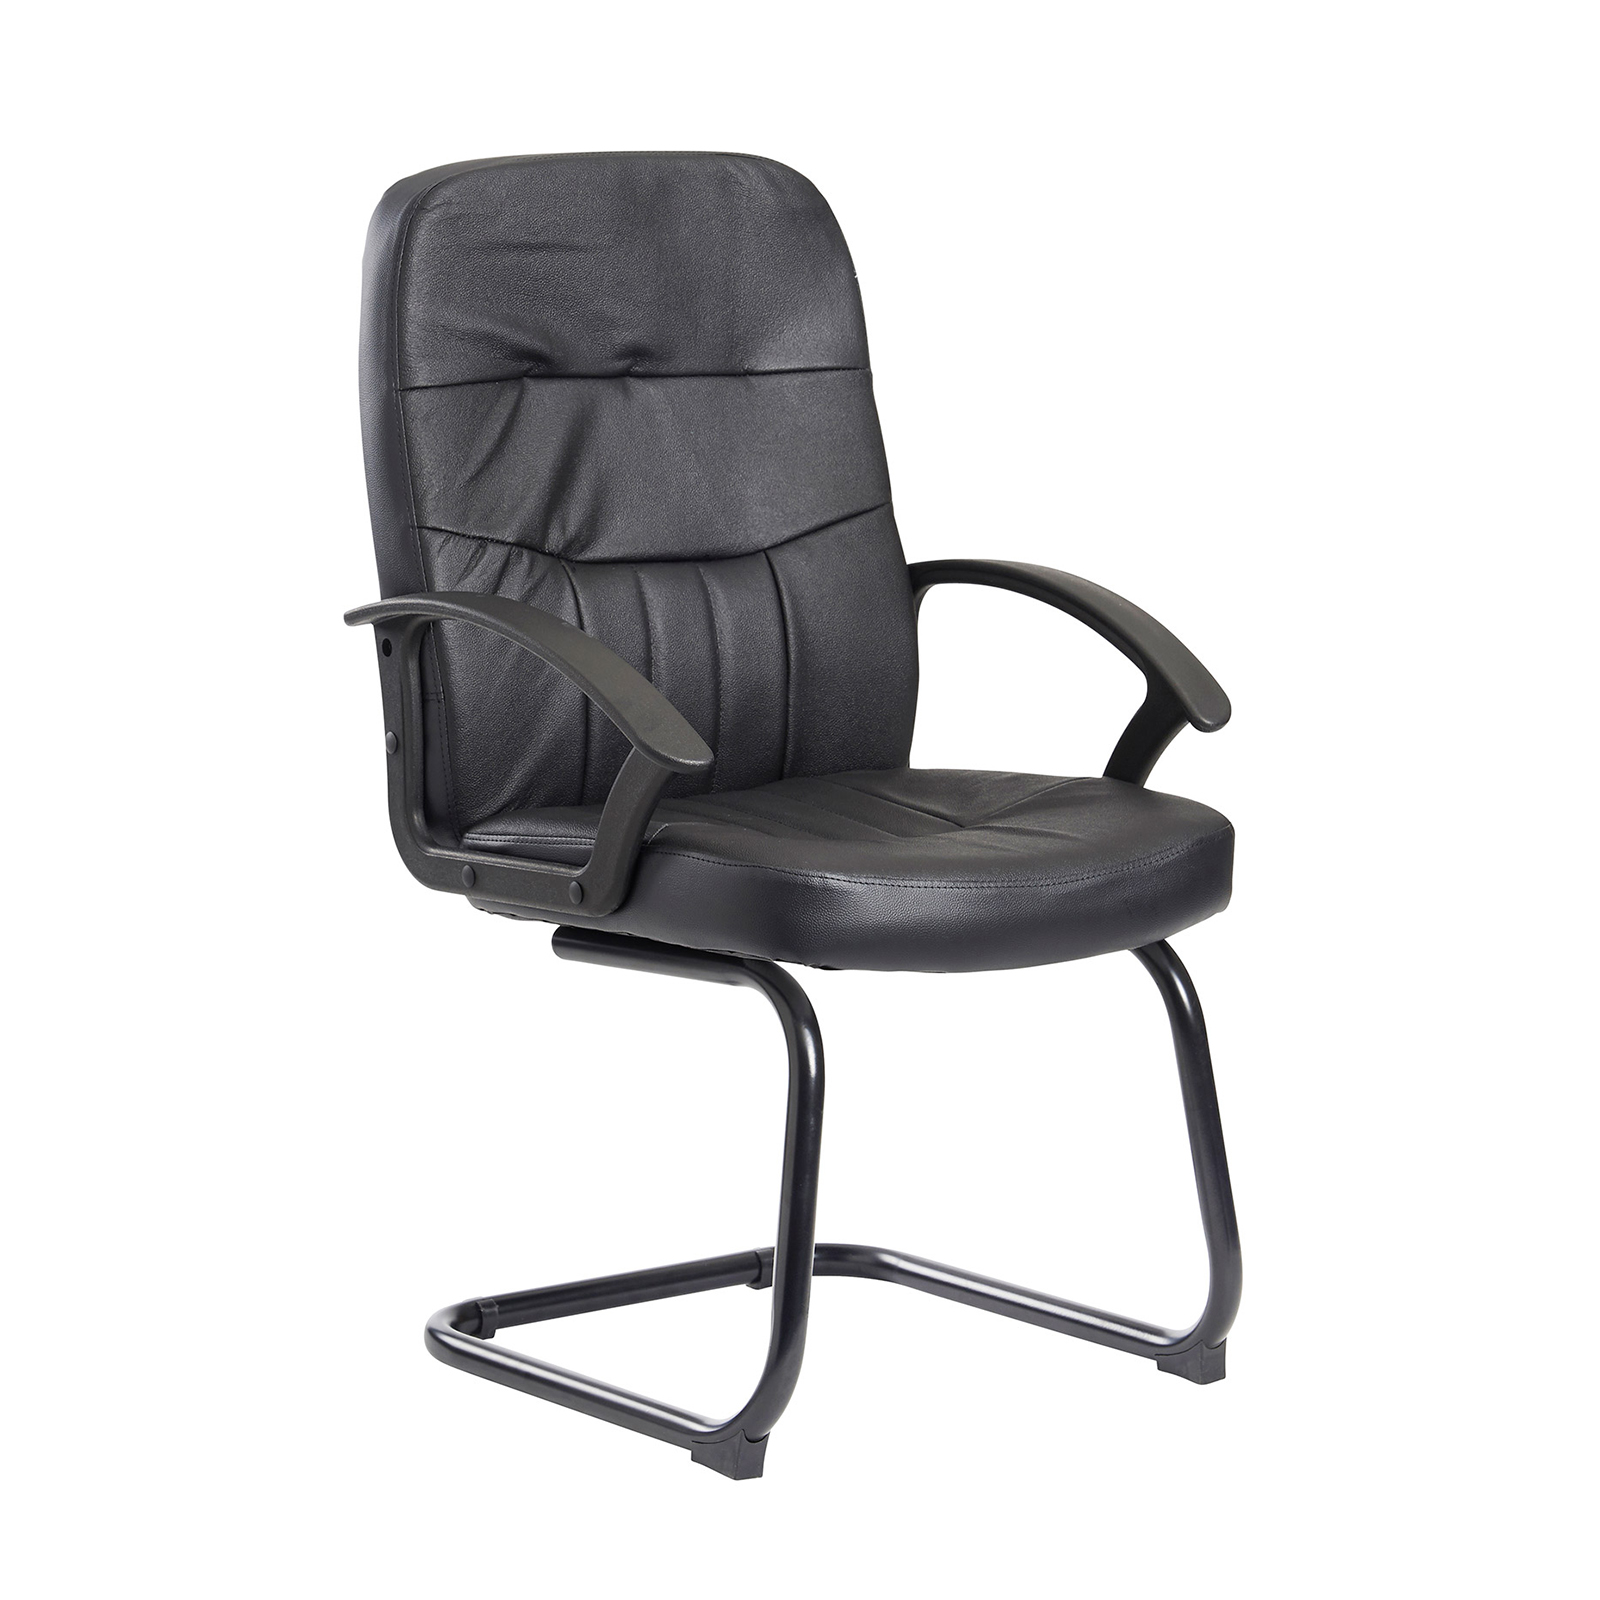 Boardroom / Meeting Cavalier executive visitors chair - black leather faced